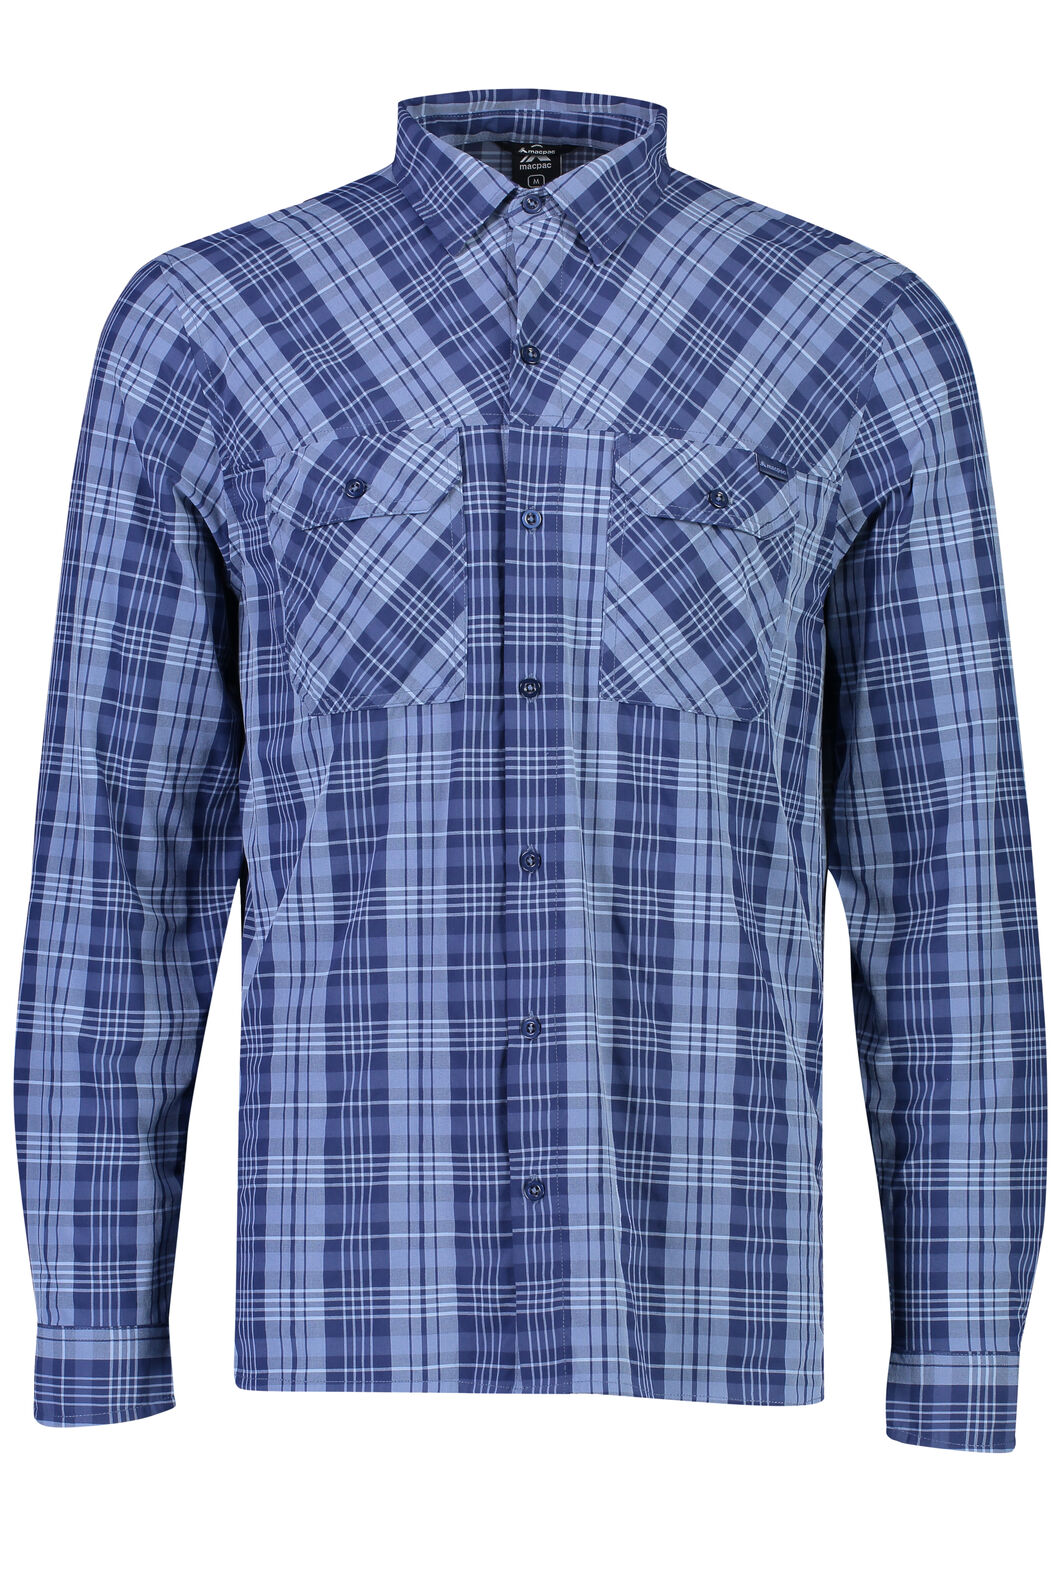 Macpac Eclipse Long Sleeve Shirt - Men's, Medieval Blue, hi-res